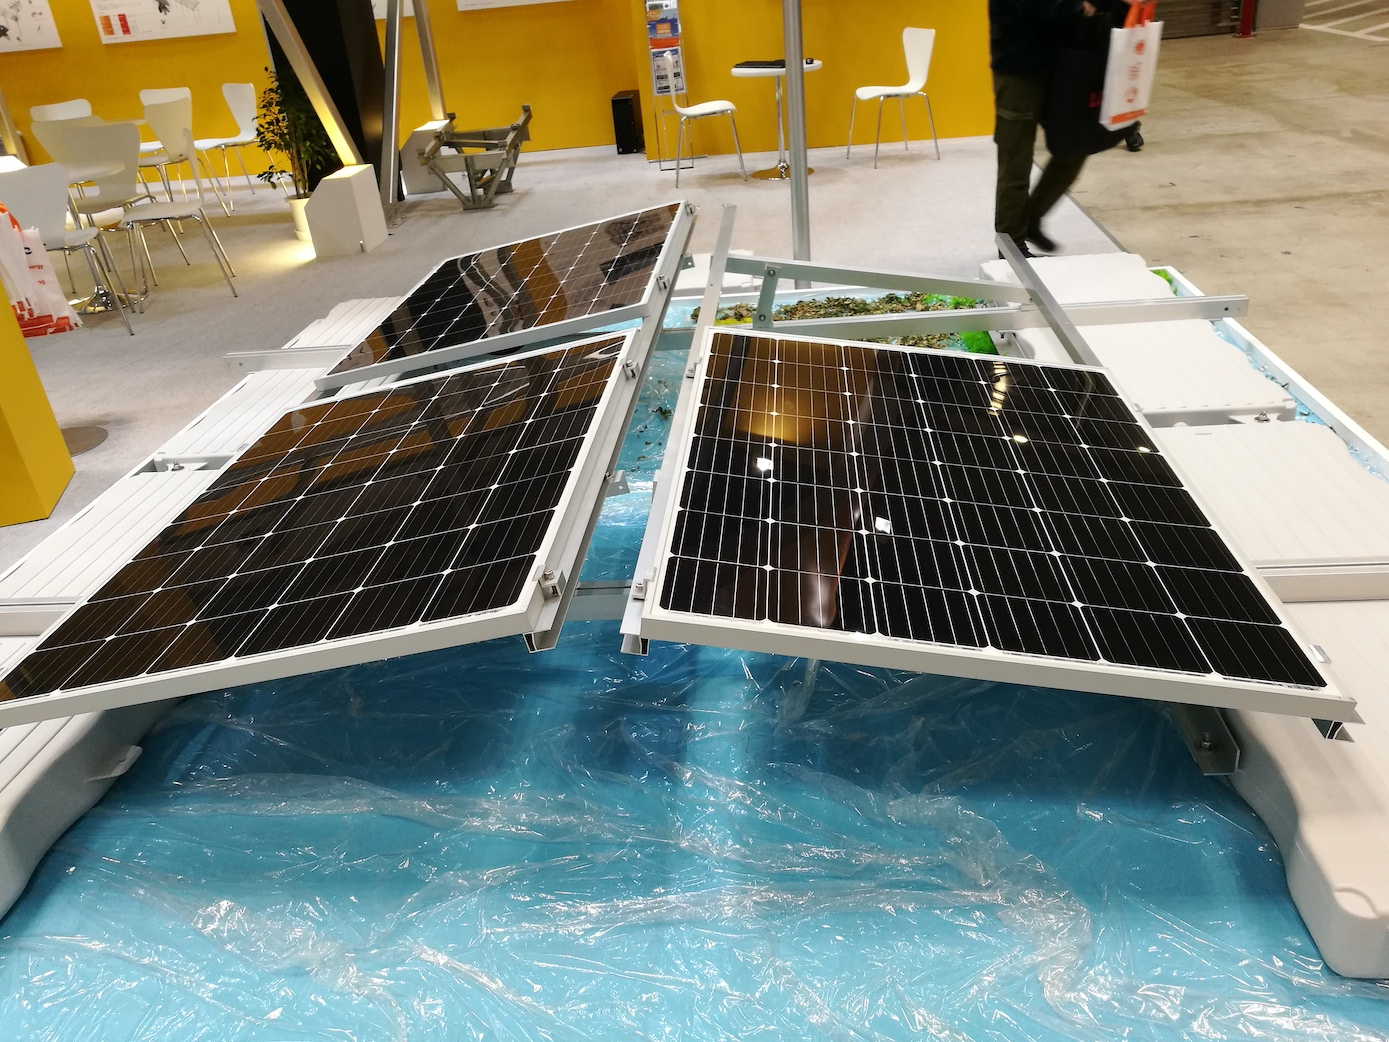 Floating solar solution at Clenergy's booth. All images: Andy Colthorpe / Solar Media.